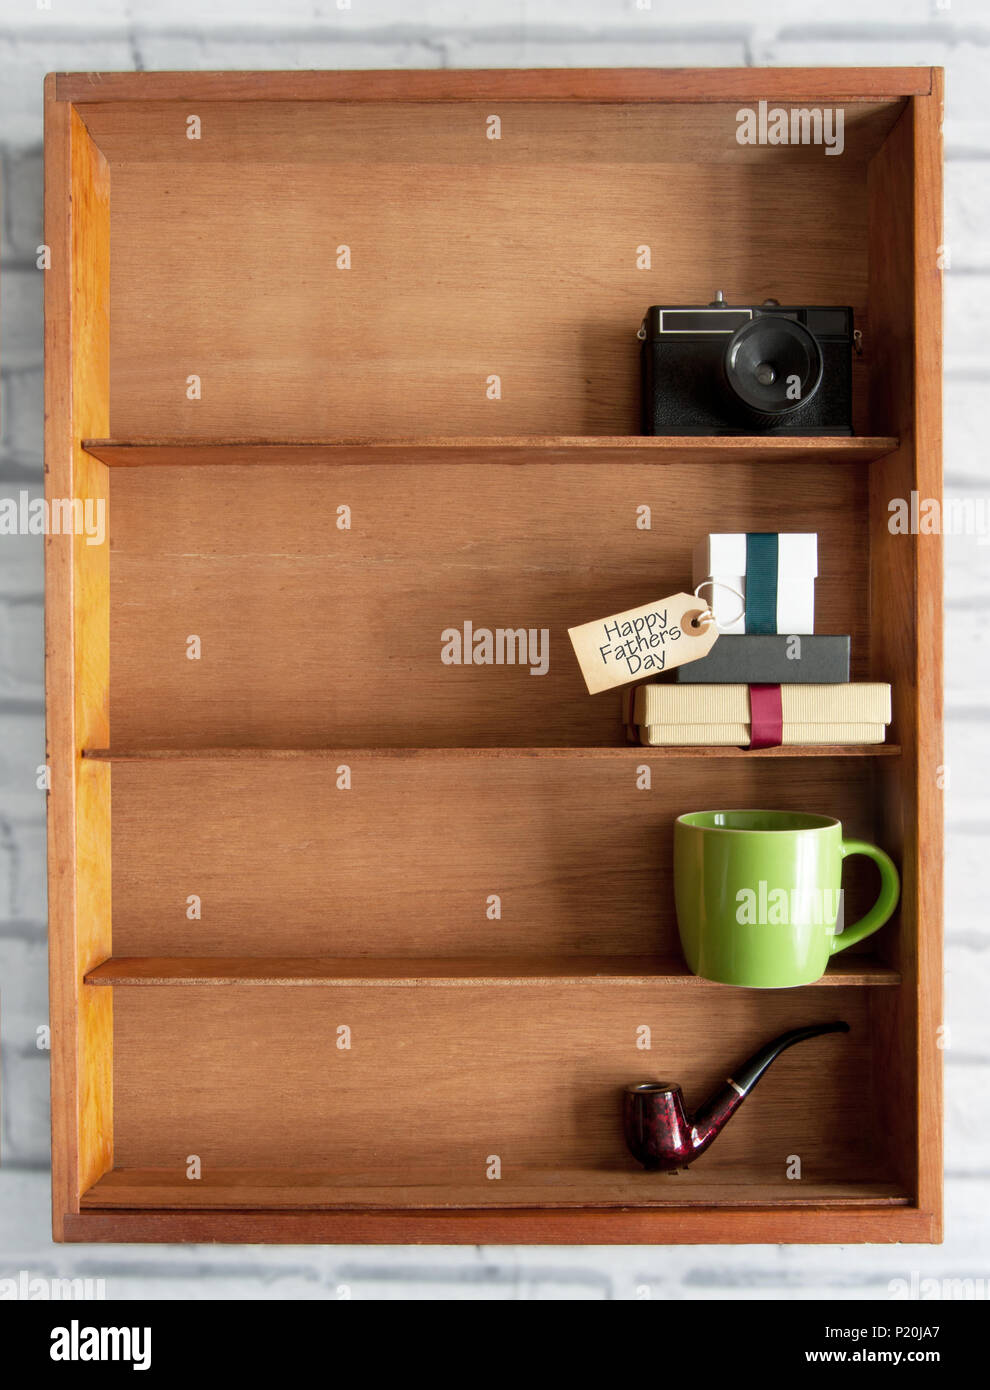 Gift Boxes With Fathers Day Label Inside A Display Shelf With Coffee Cup And Pipe Stock Photo Alamy